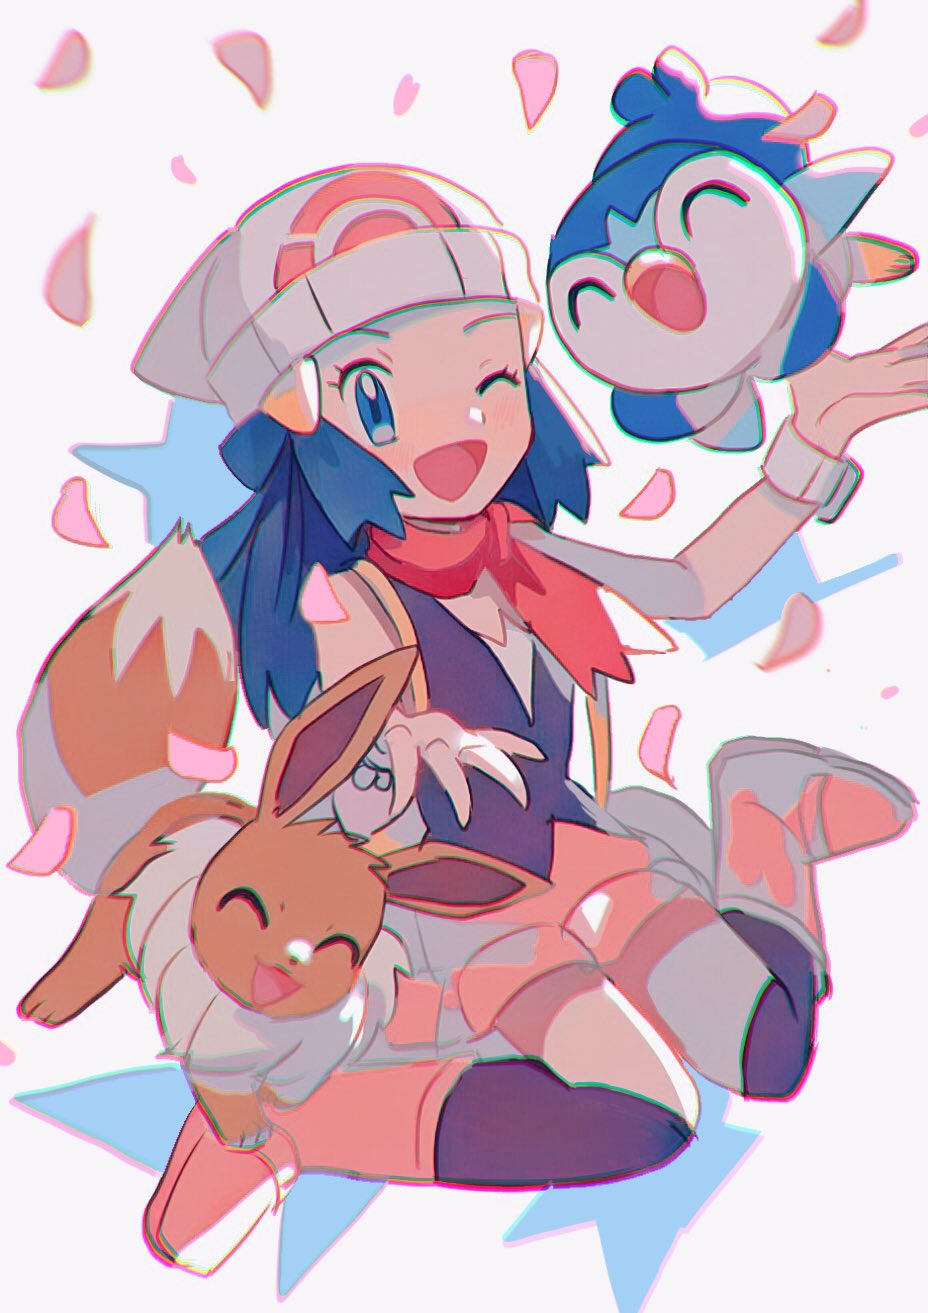 1girl ;d beanie blue_eyes blue_hair boots bracelet brown_legwear commentary_request dawn_(pokemon) eevee eyelashes gen_1_pokemon gen_4_pokemon hair_ornament hairclip hands_up hat highres hinann_bot jewelry kneehighs long_hair one_eye_closed open_mouth petals pink_footwear piplup pokemon pokemon_(anime) pokemon_(creature) pokemon_swsh_(anime) red_scarf scarf sitting sleeveless smile tongue white_headwear